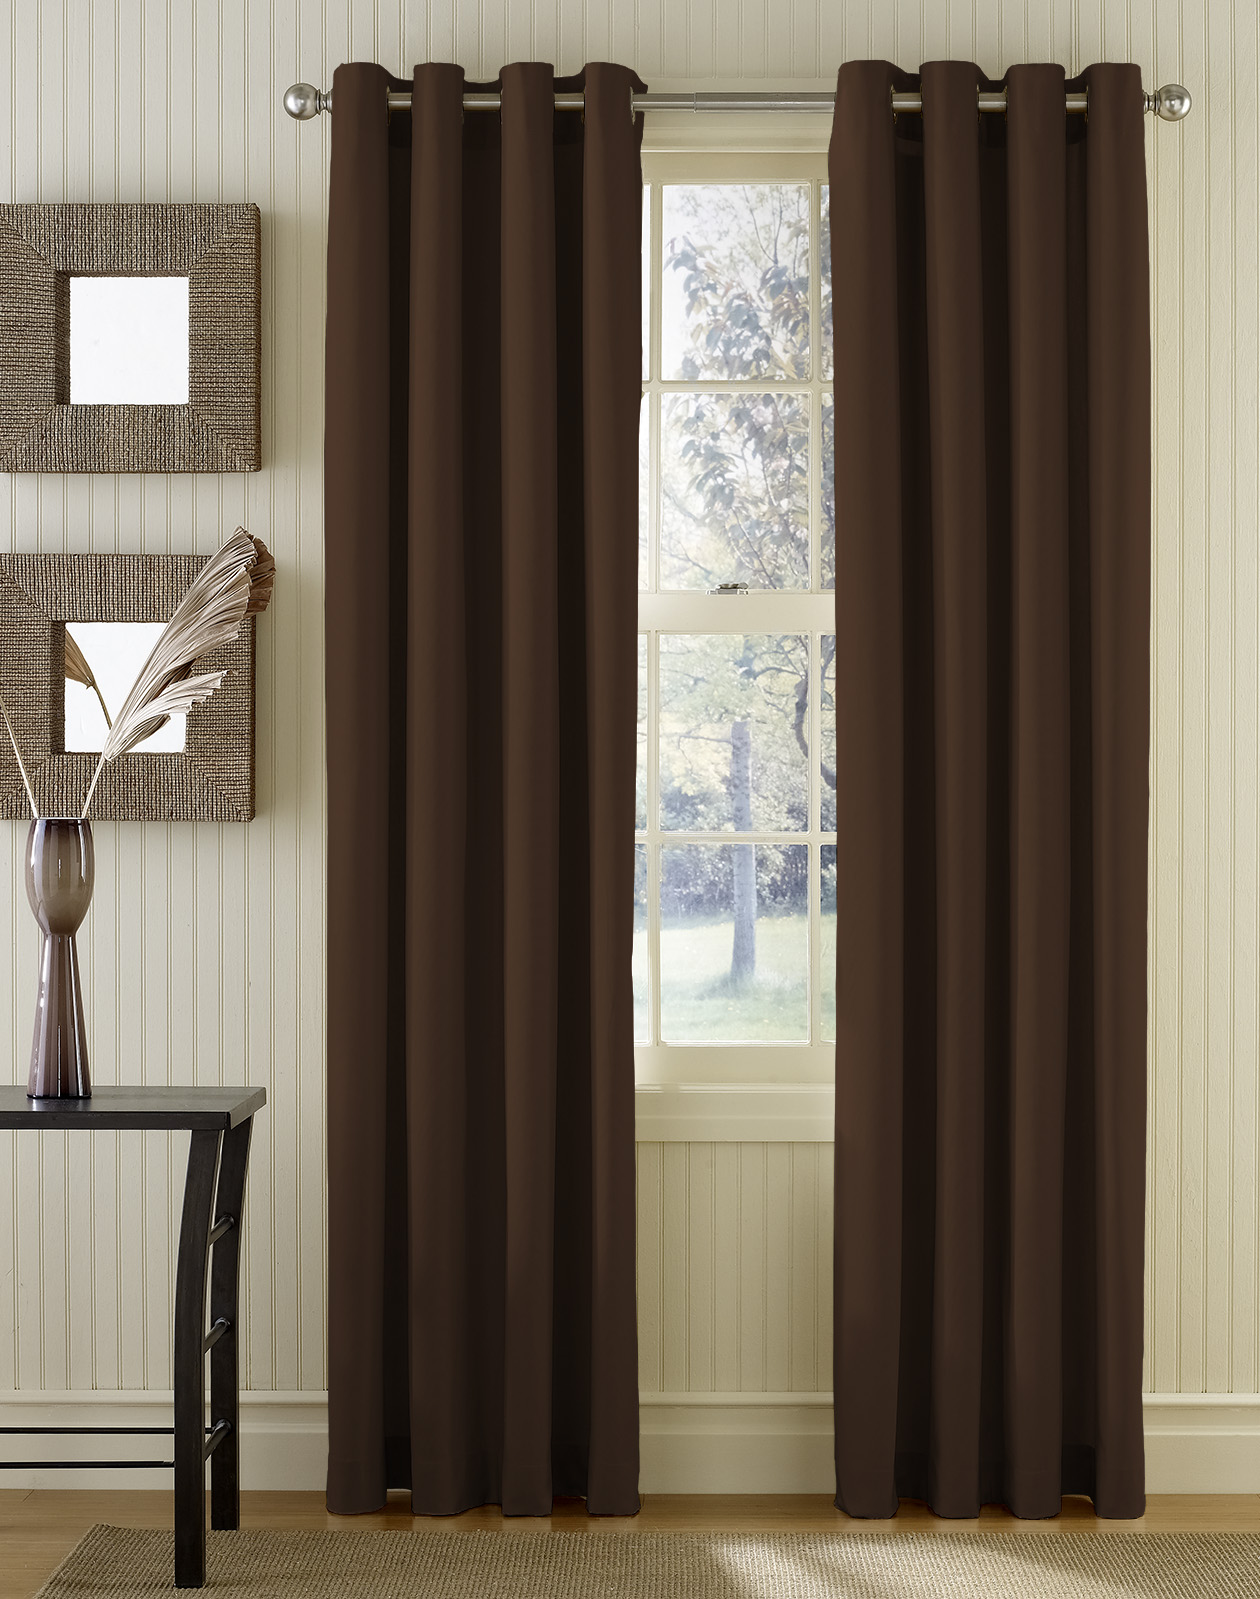 Curtain interior design what is minimalist curtain design for Bedroom curtains designs